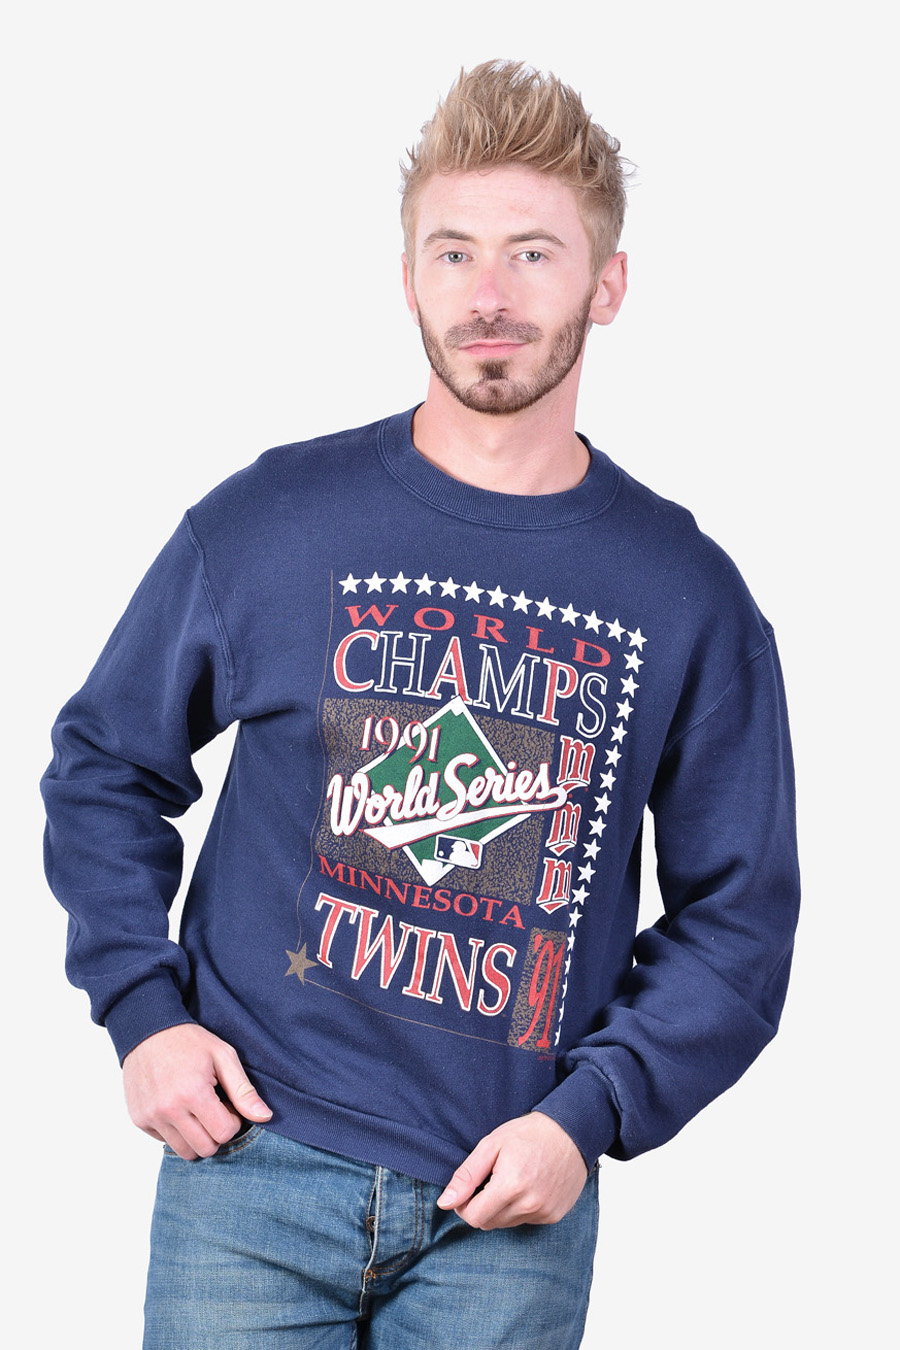 1991 Minnesota Twins World Champs sweatshirt